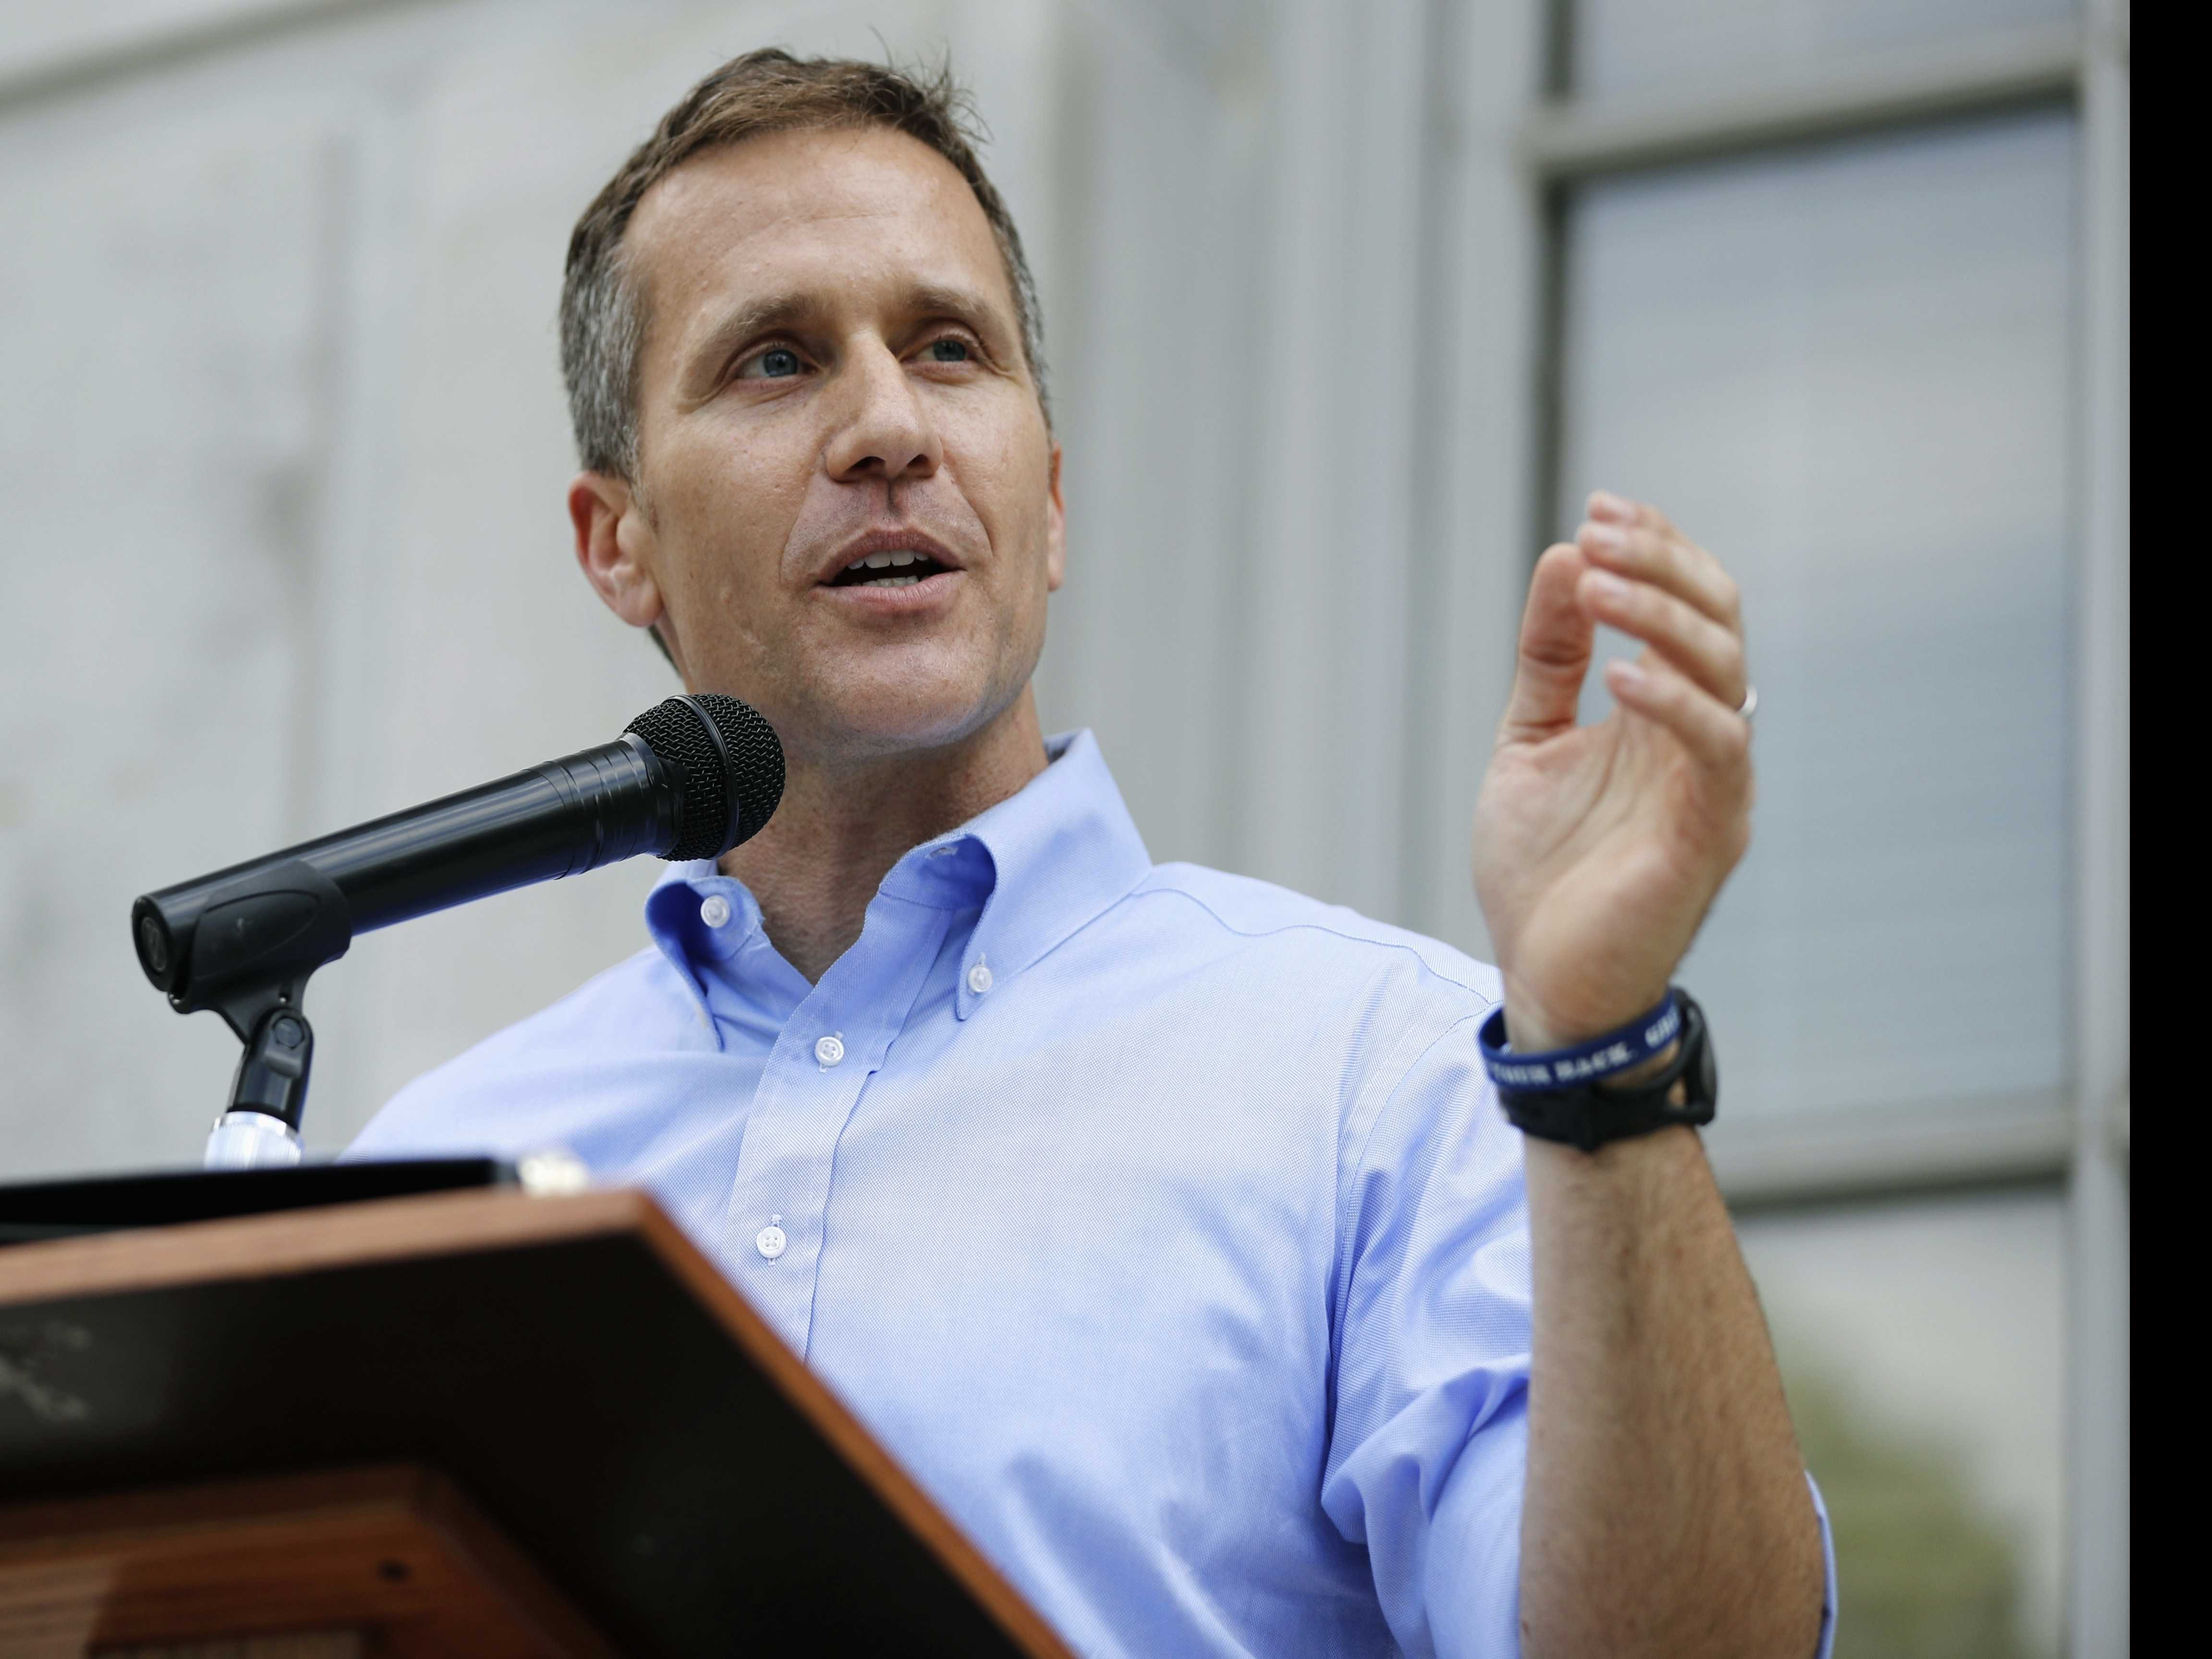 Indictment of Missouri Governor Could Have Political Ripples